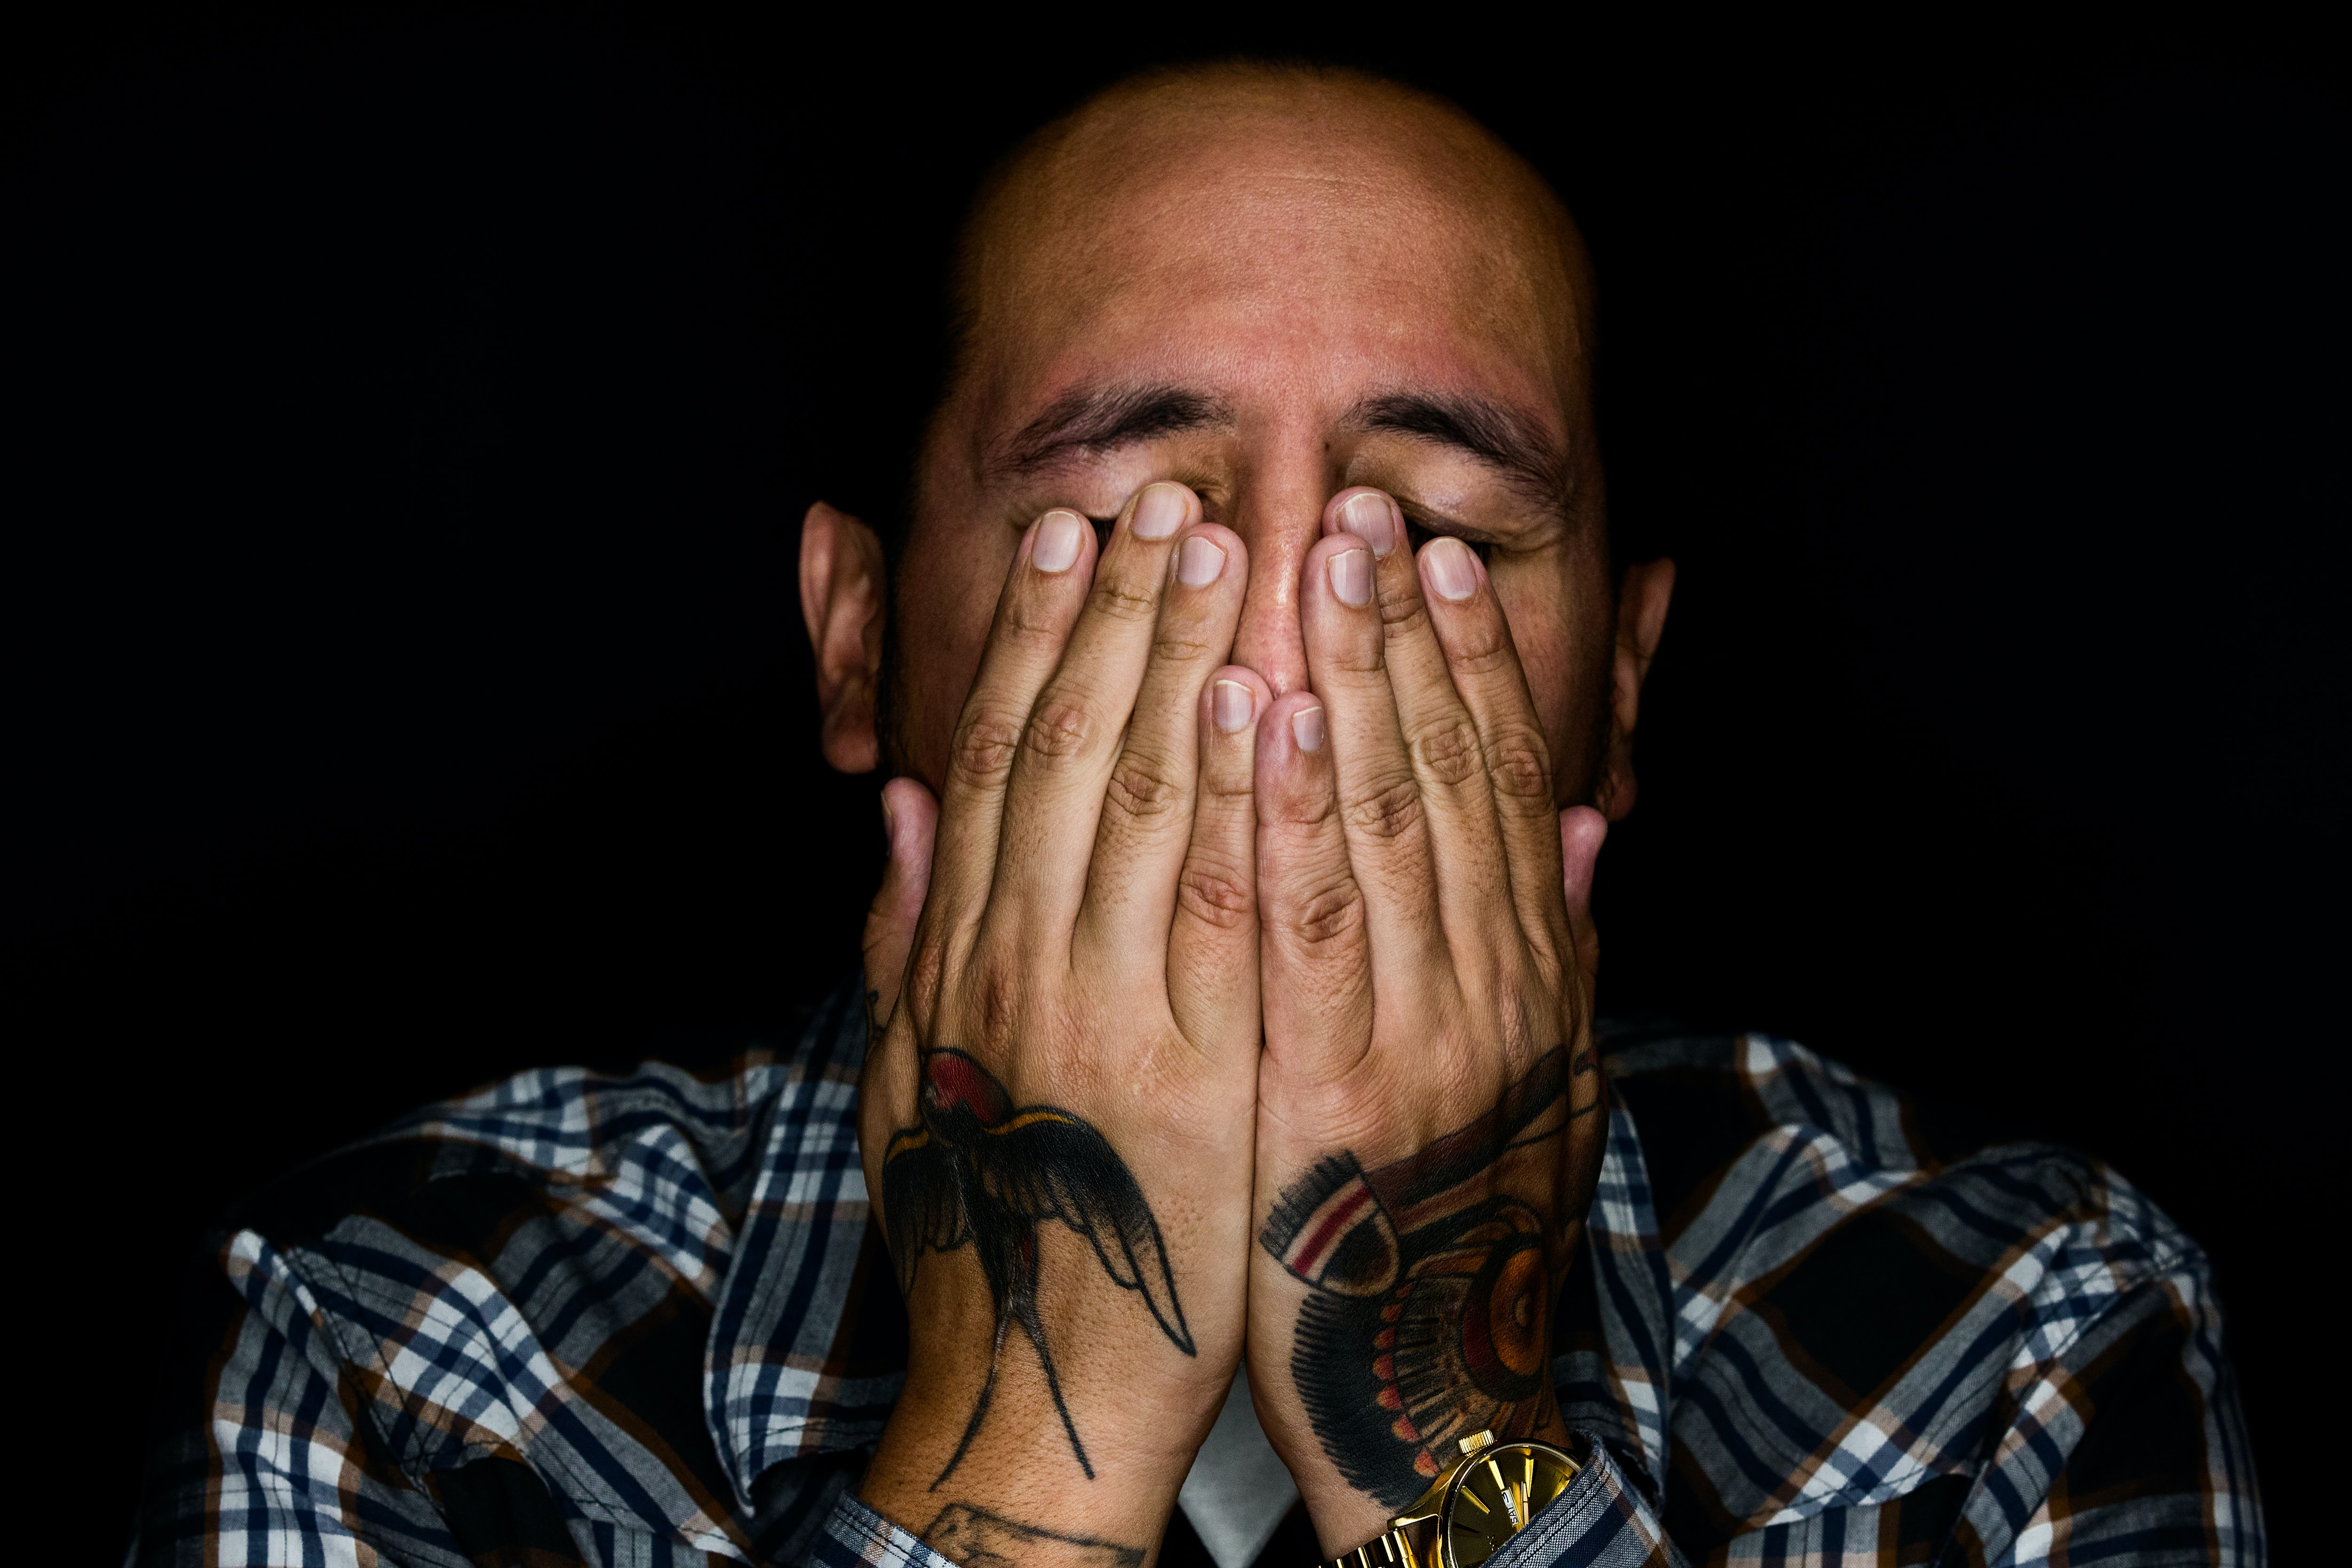 Man in a checkered shirt covering his face with tattooed hands